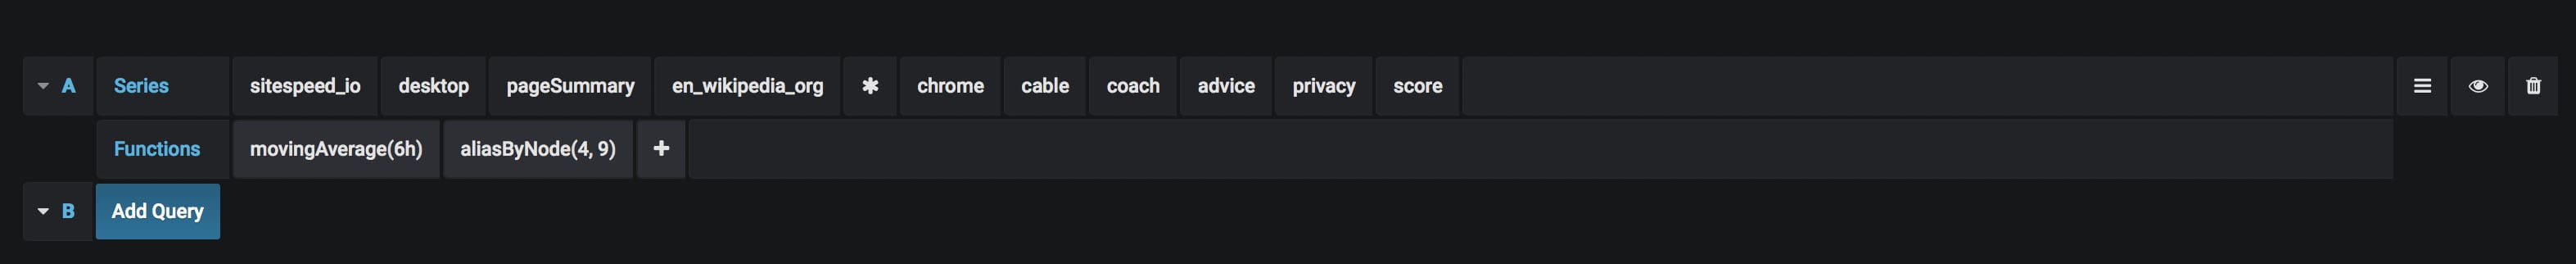 Alert privacy query